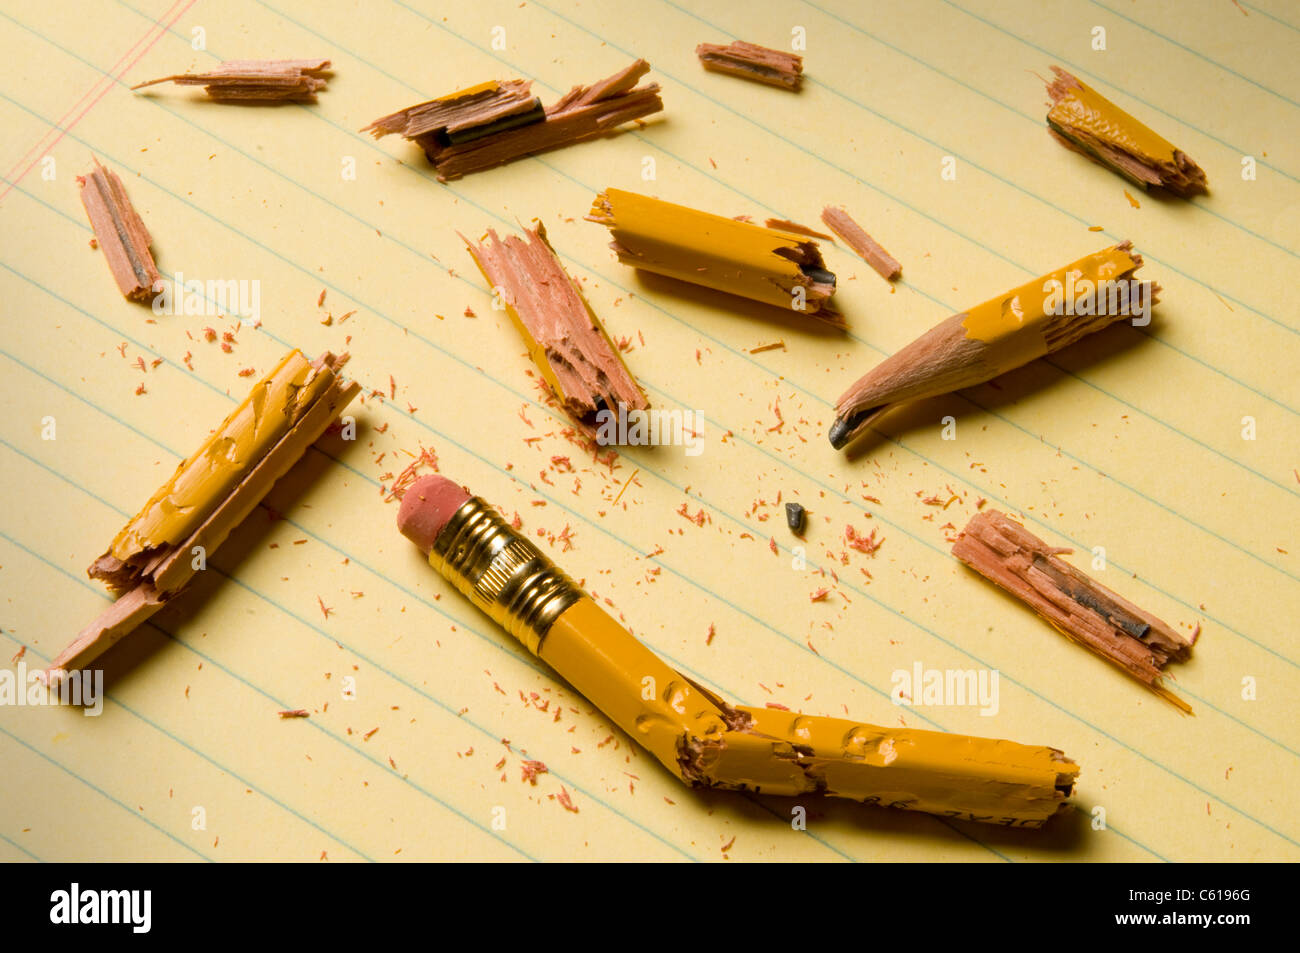 Shattered pencil fragments on a yellow legal pad, perhaps symbolizing writer's block - Stock Image